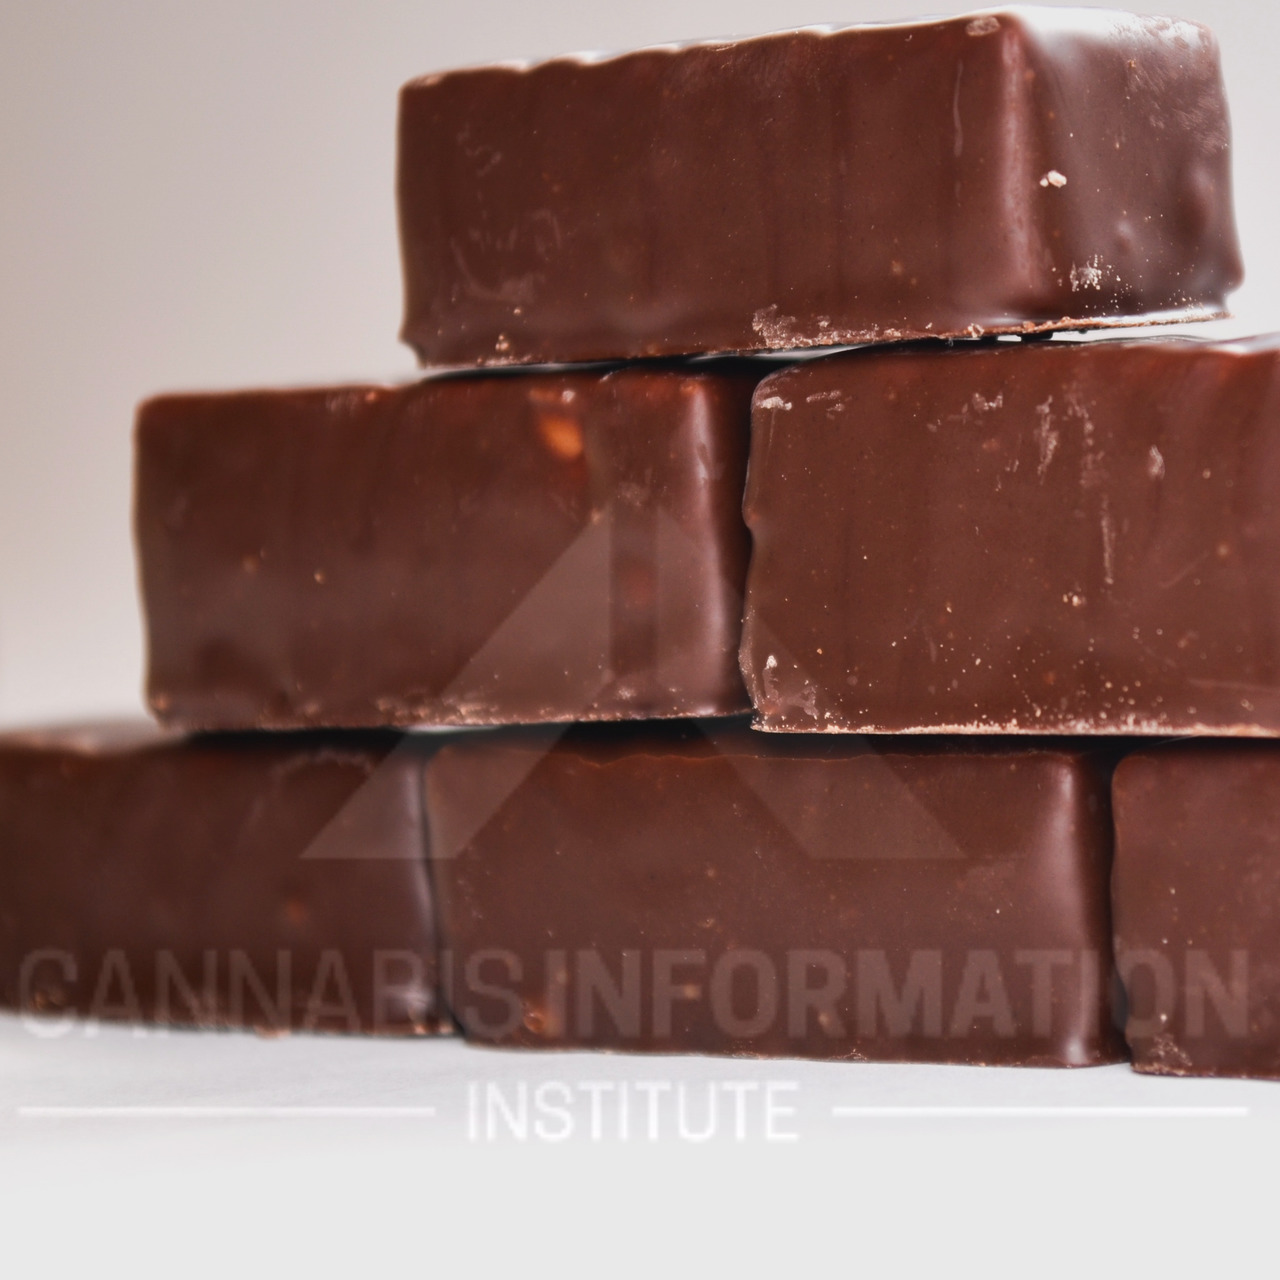 infused fudge, how to make cannabis fudge, how to make weed fudge recipe, high times fudge recipe, no bake edibles with cannabis oil ,best fudge recipe, no bake edibles with coconut oil, weed brownie, edibles recipes microwave, cannabis oil recipe, how to make edibles with shake, how to make cannabis edibles with coconut oil, coconut oil edibles, cannabis fudge recipe easy, easy infused fudge recipe, coconut oil infused, no bake cannabis edibles, cannabis fudge recipe simple, easiest fudge recipe